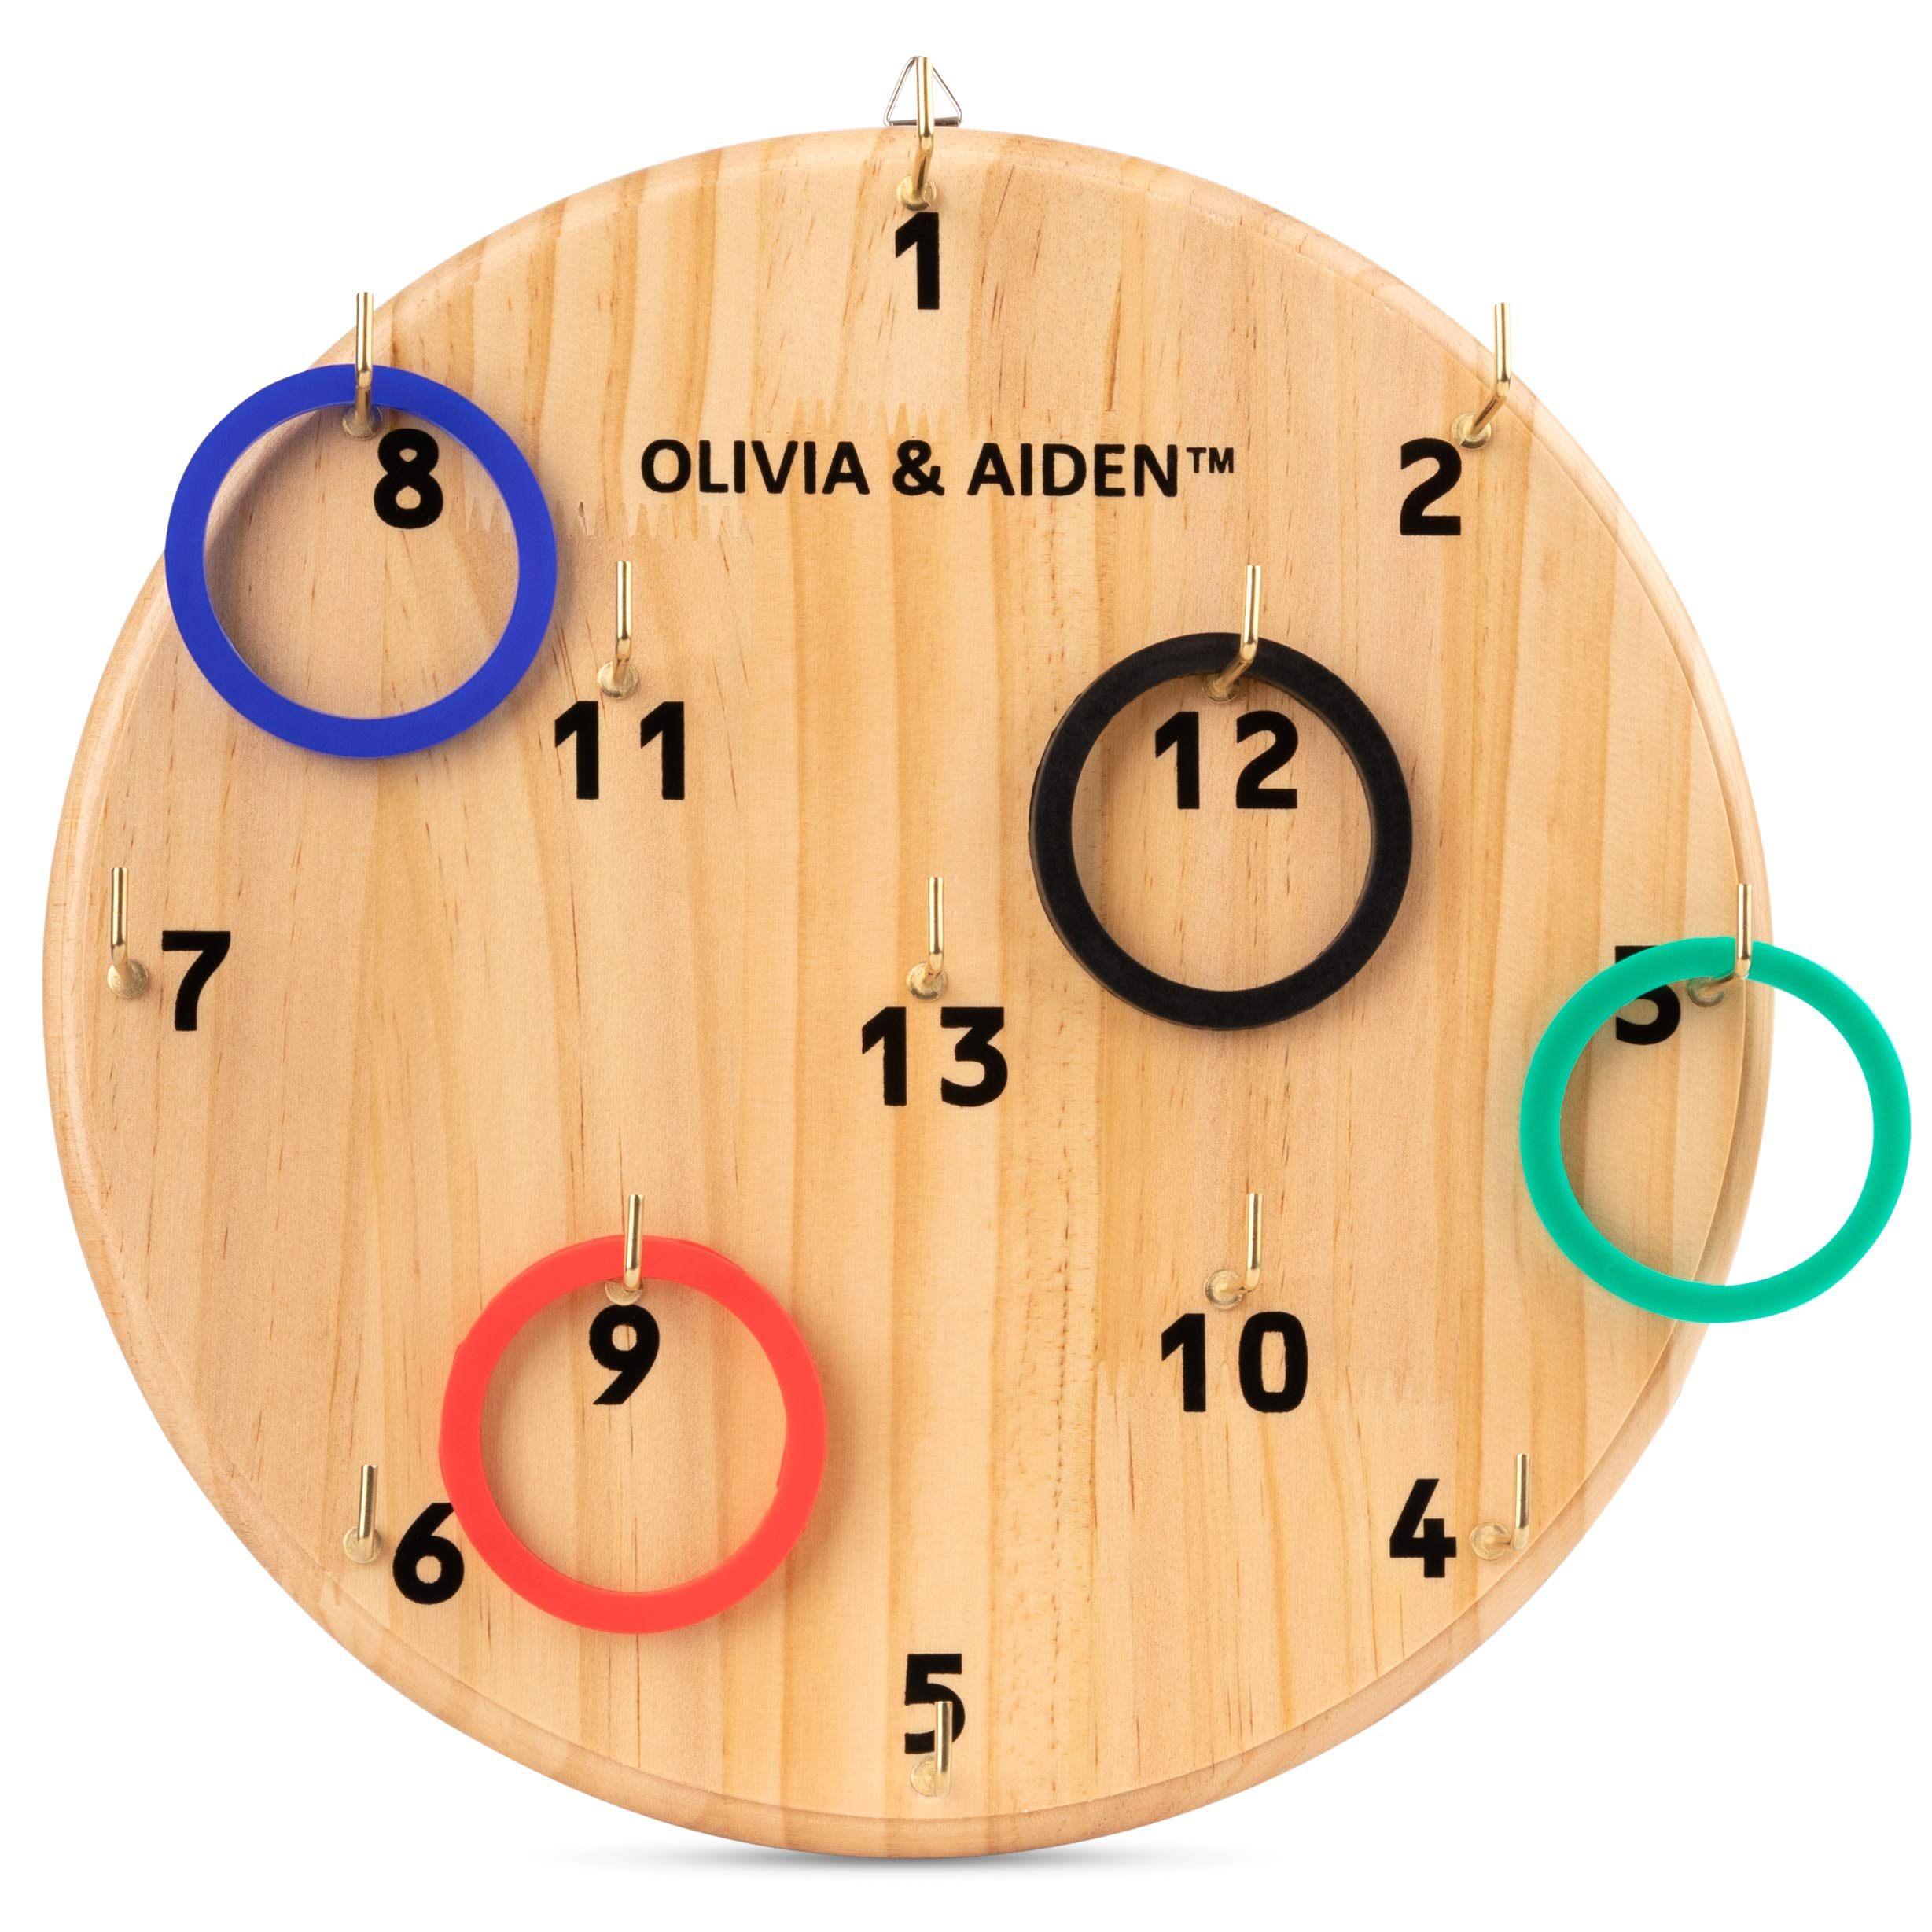 OLIVIA & AIDEN Ring Toss Game for Kids and Adults | Indoor - Outdoor Hook Board Ring Toss | Home, Office, Bar, Backyard or Poolside Game | 4 Color Ring Set for 4 Player Game | Carry Bag by OLIVIA & AIDEN